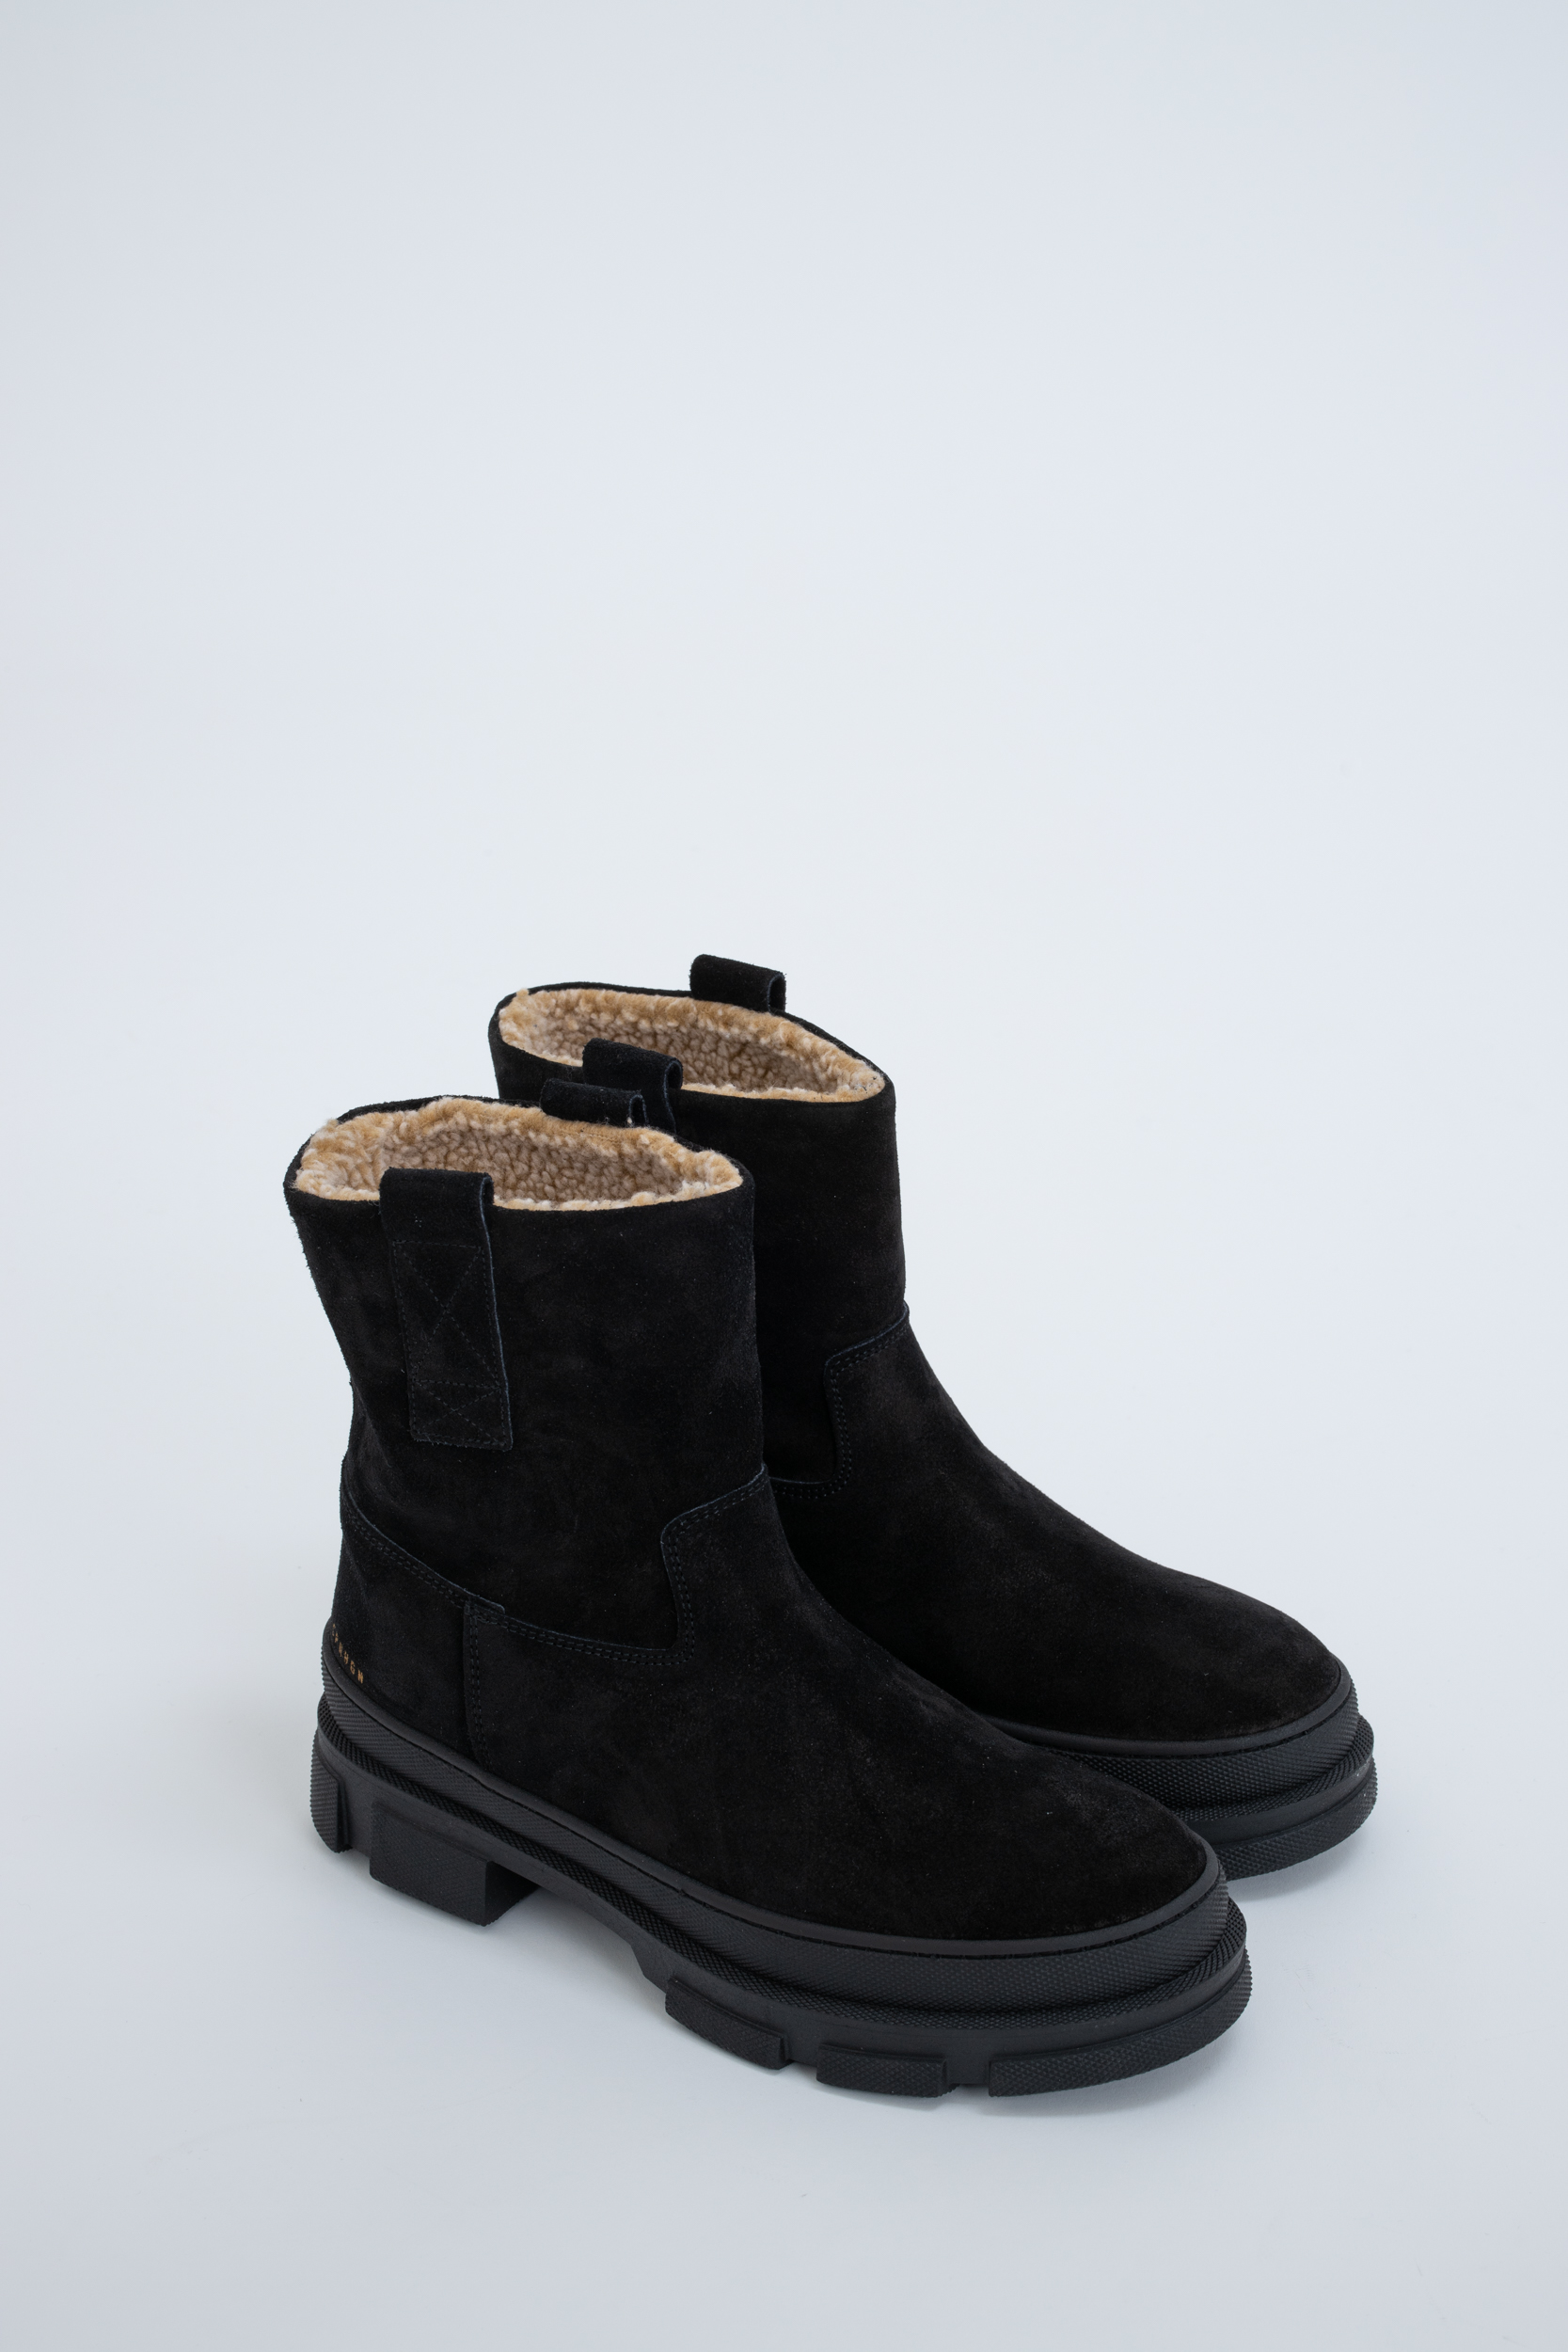 Boots CPH507 Crosta Black